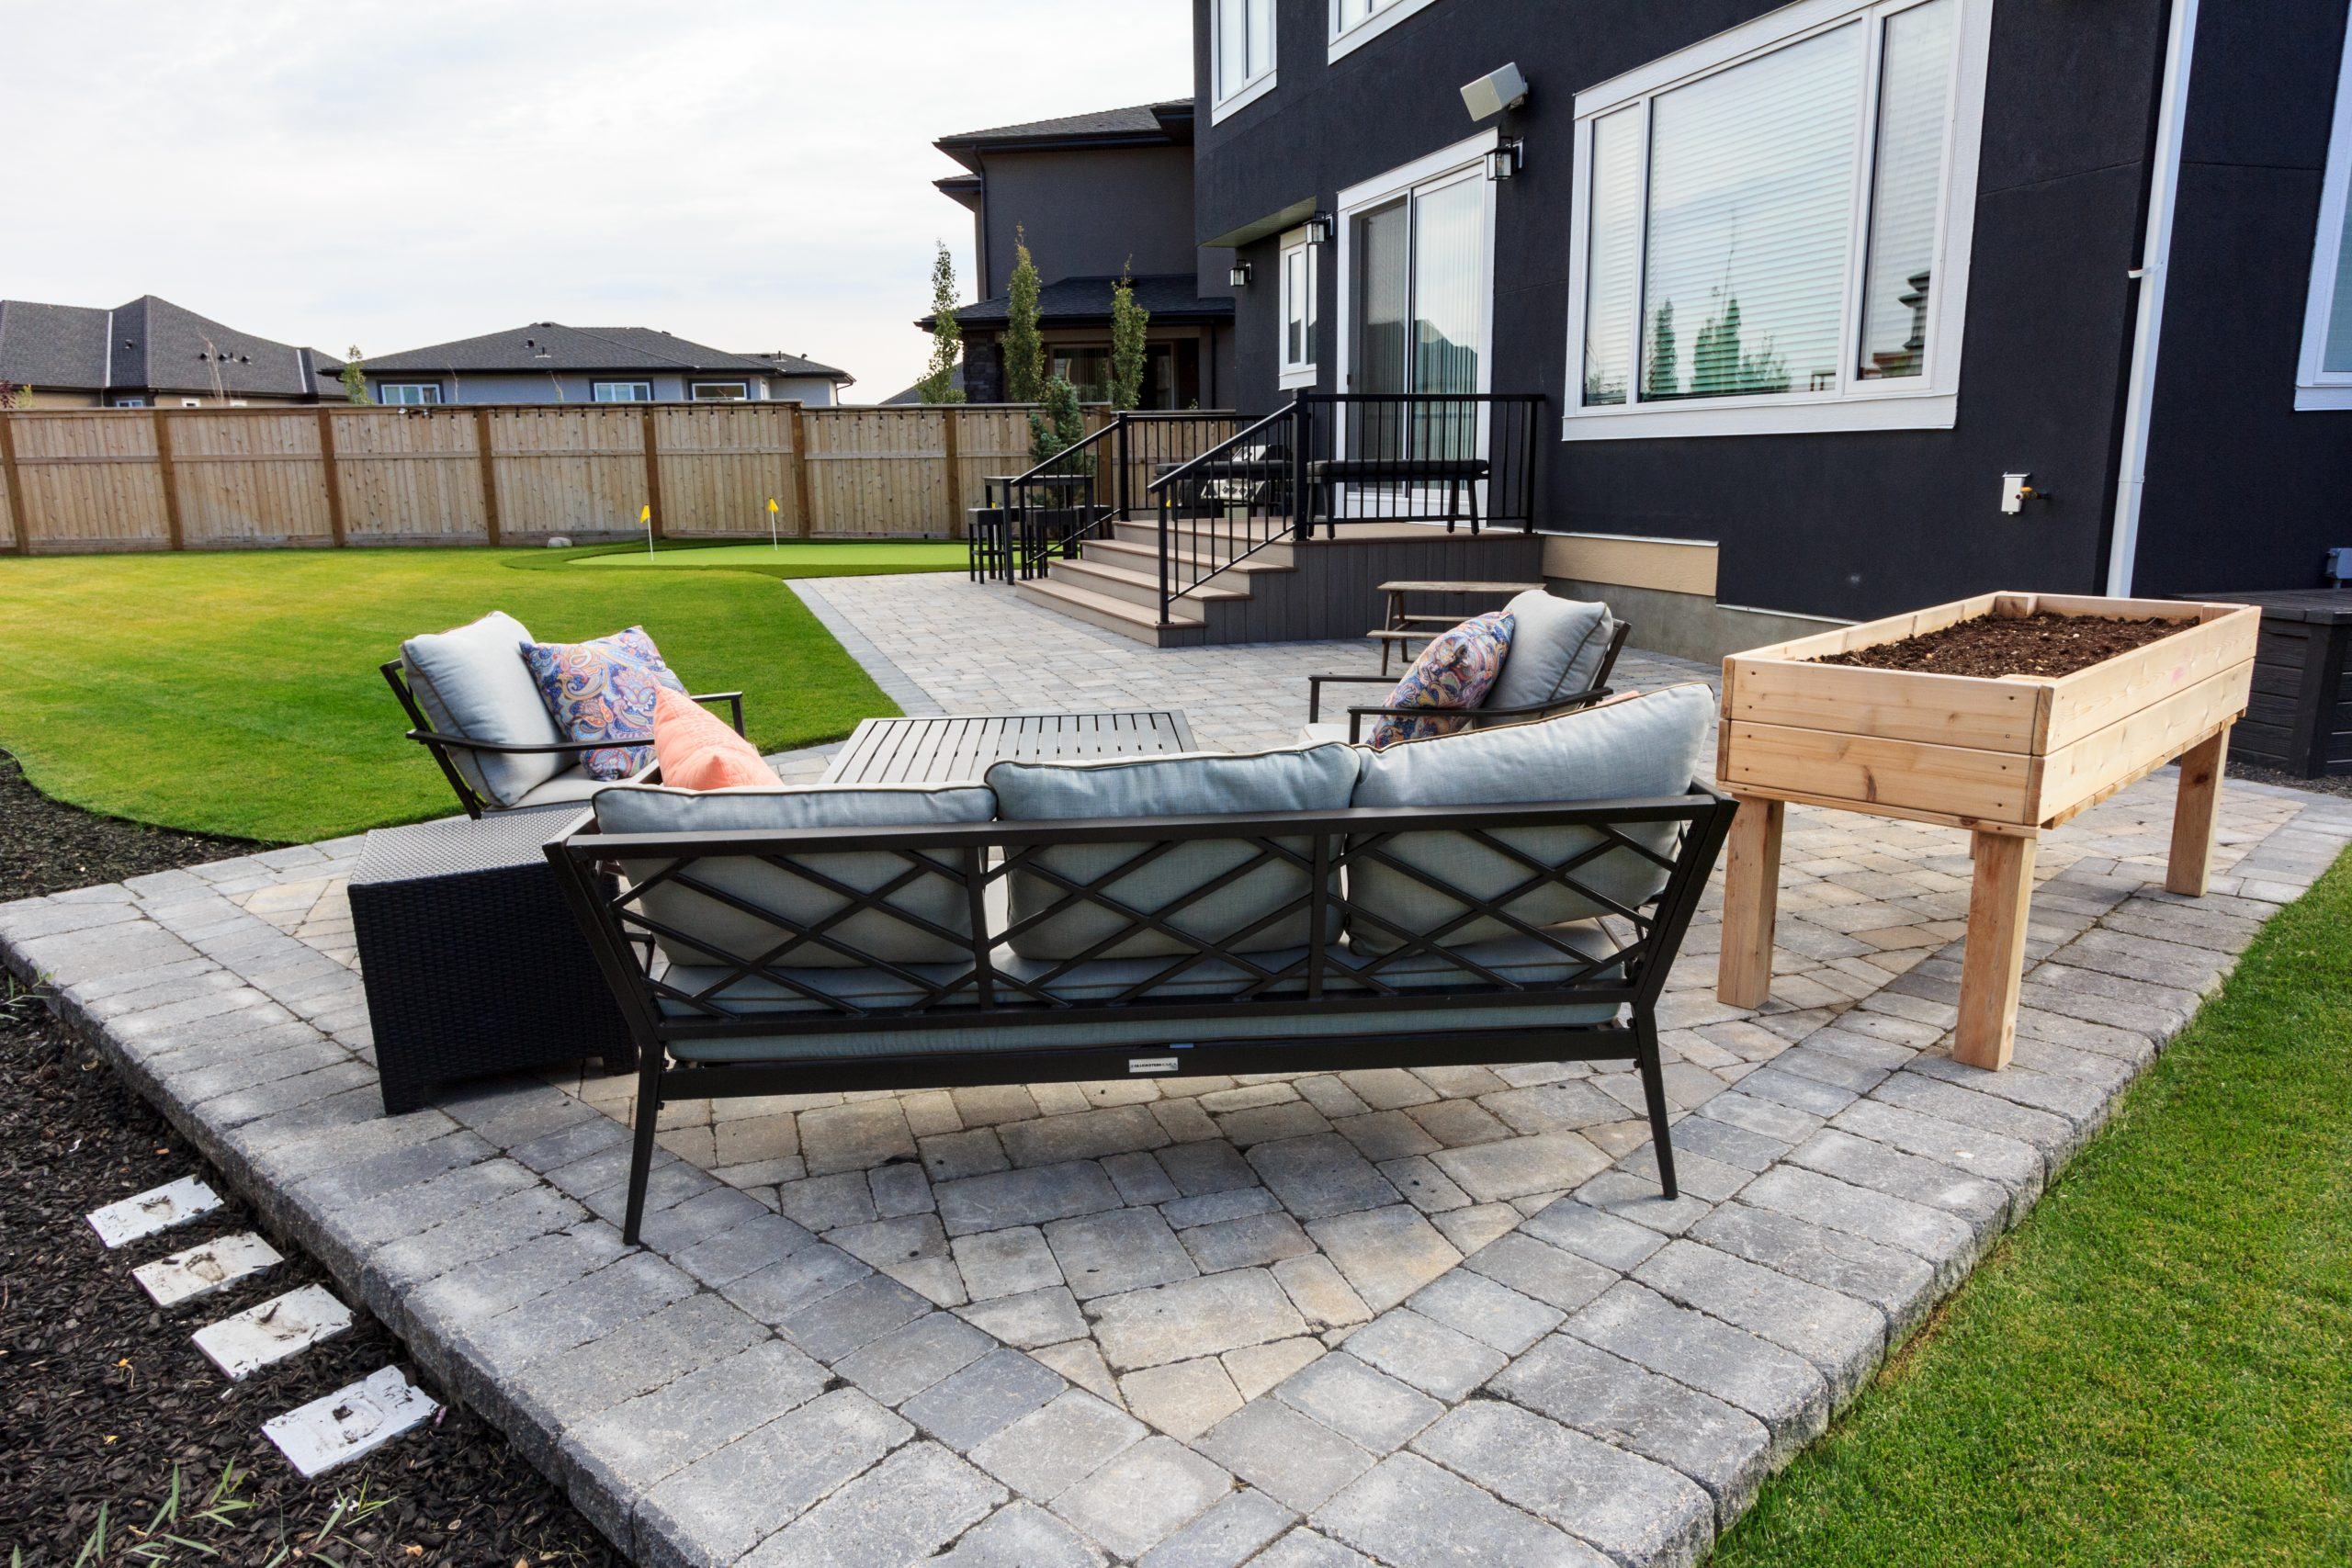 Backyard landscaping with large patio and synthetic putting green